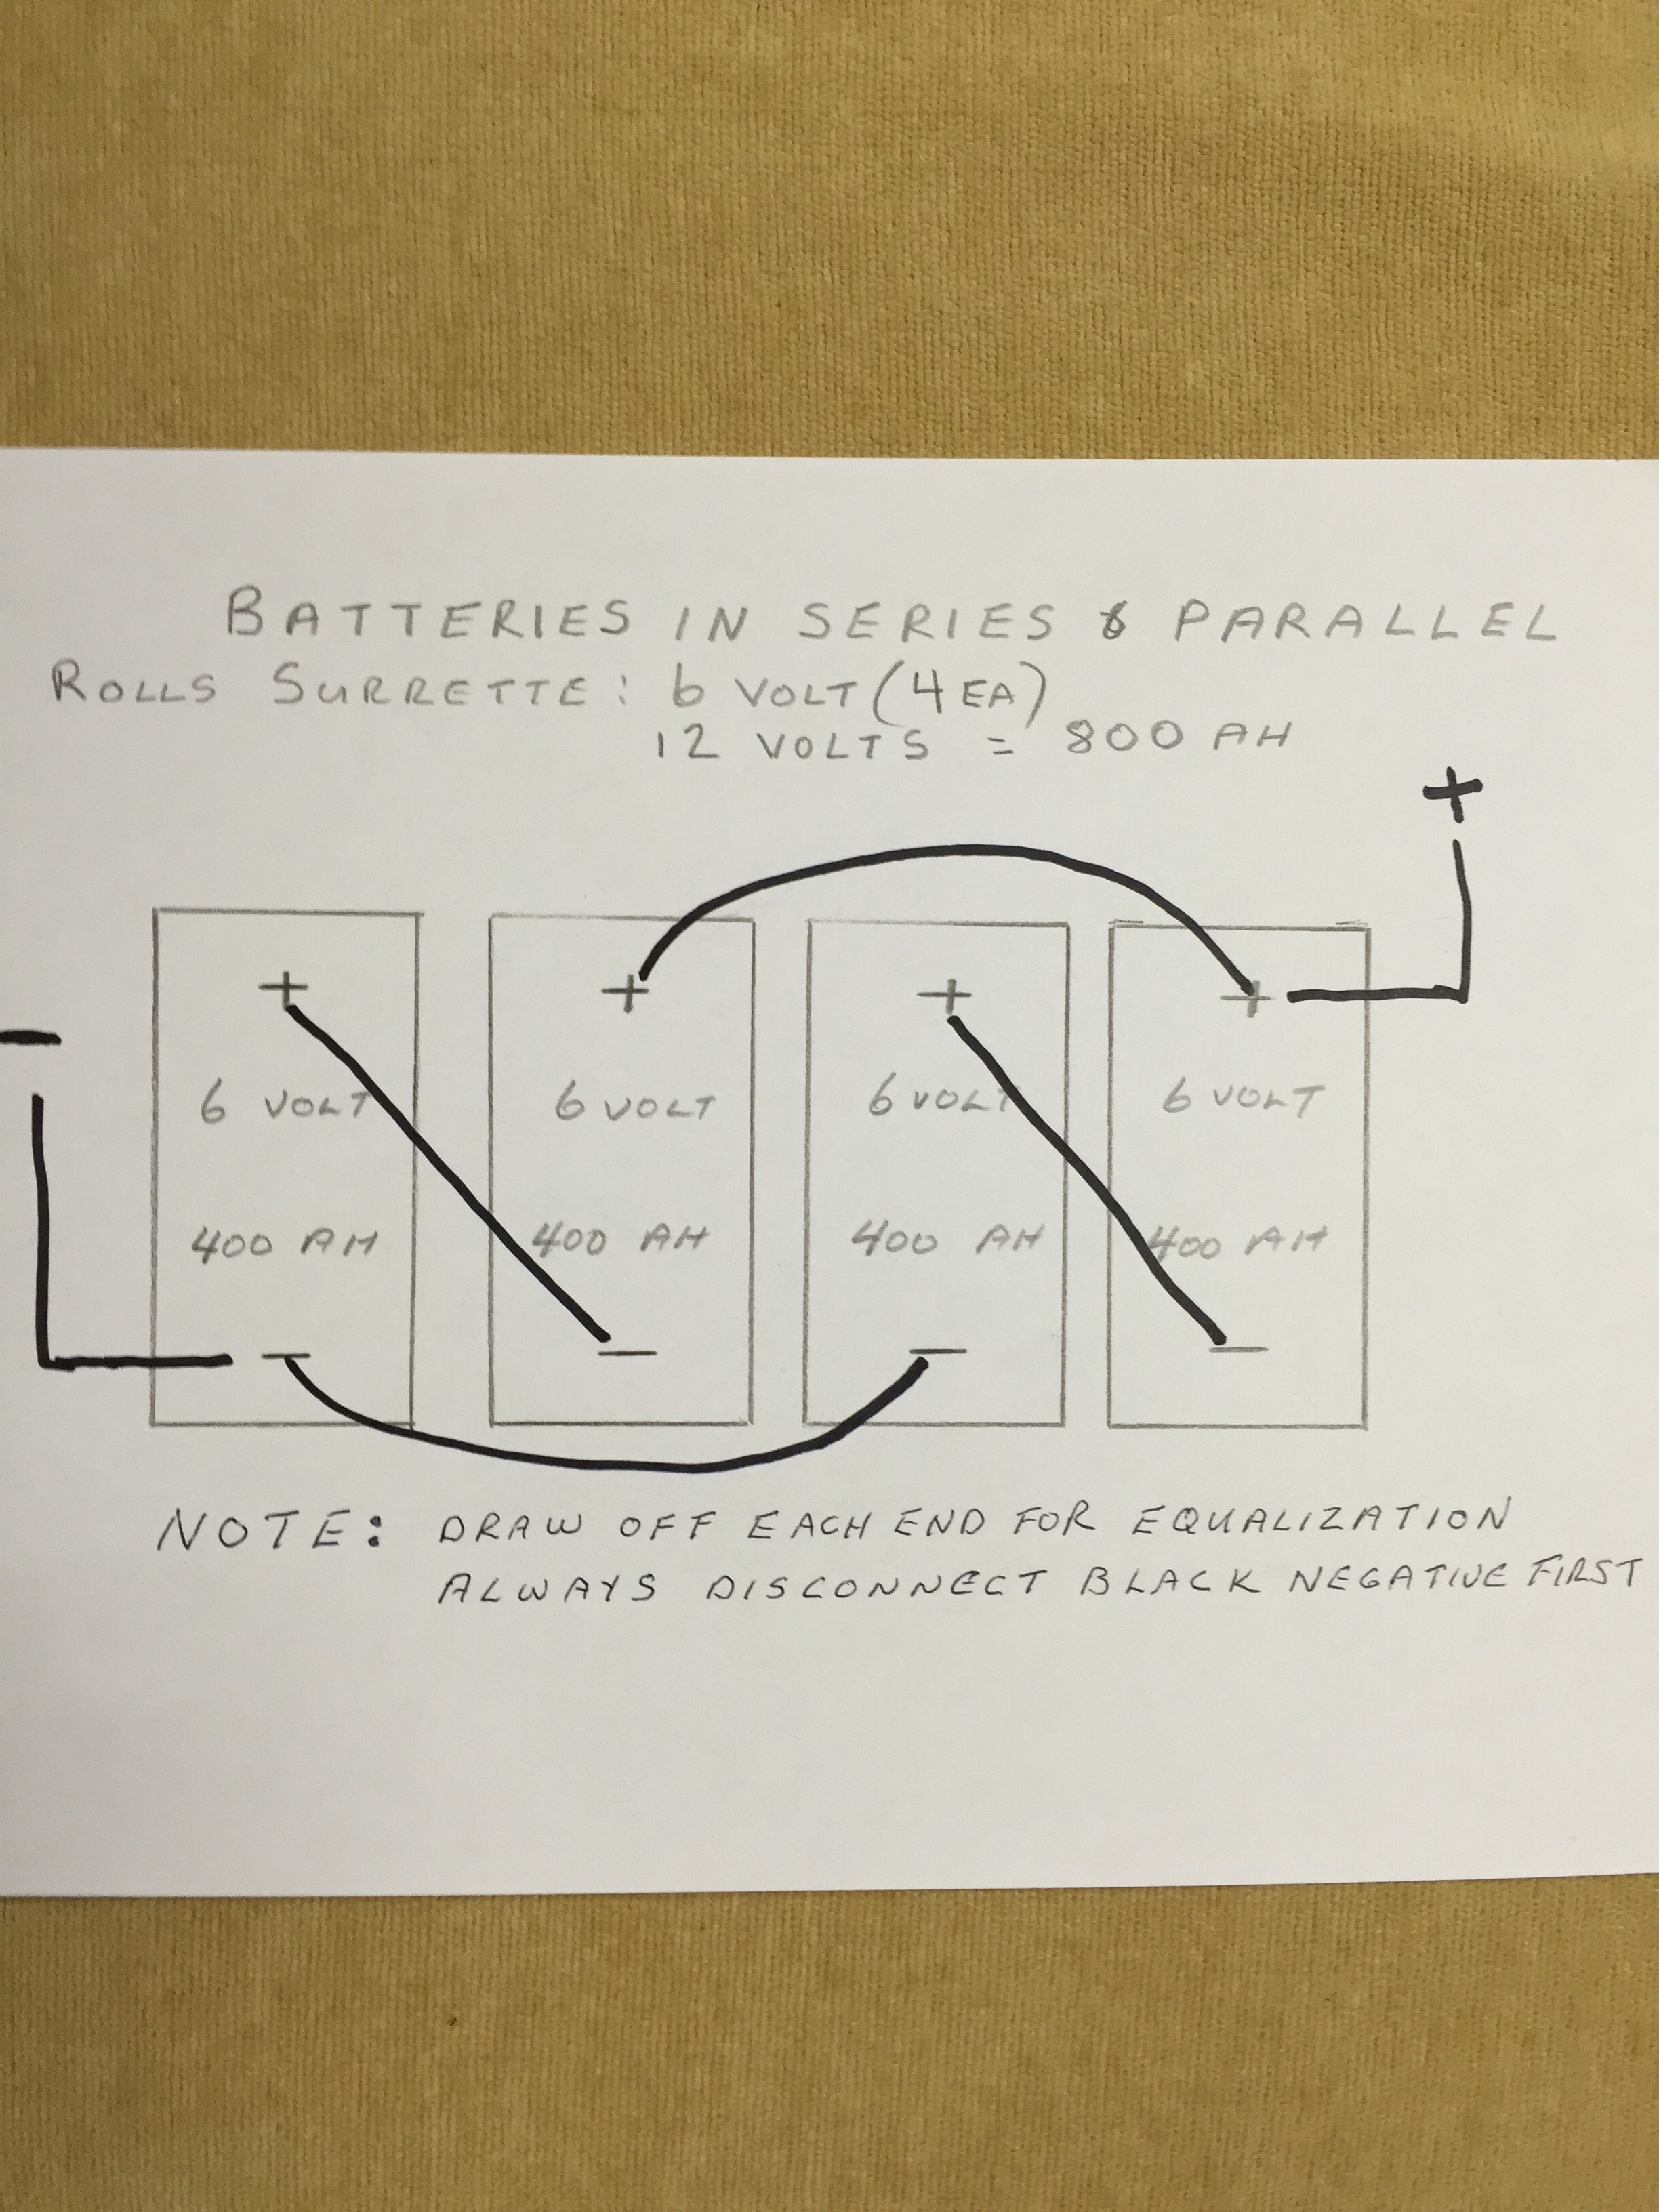 Looking For Advice On Series Parallel Connection 4x 6v Wiring Batteries In Or Correct